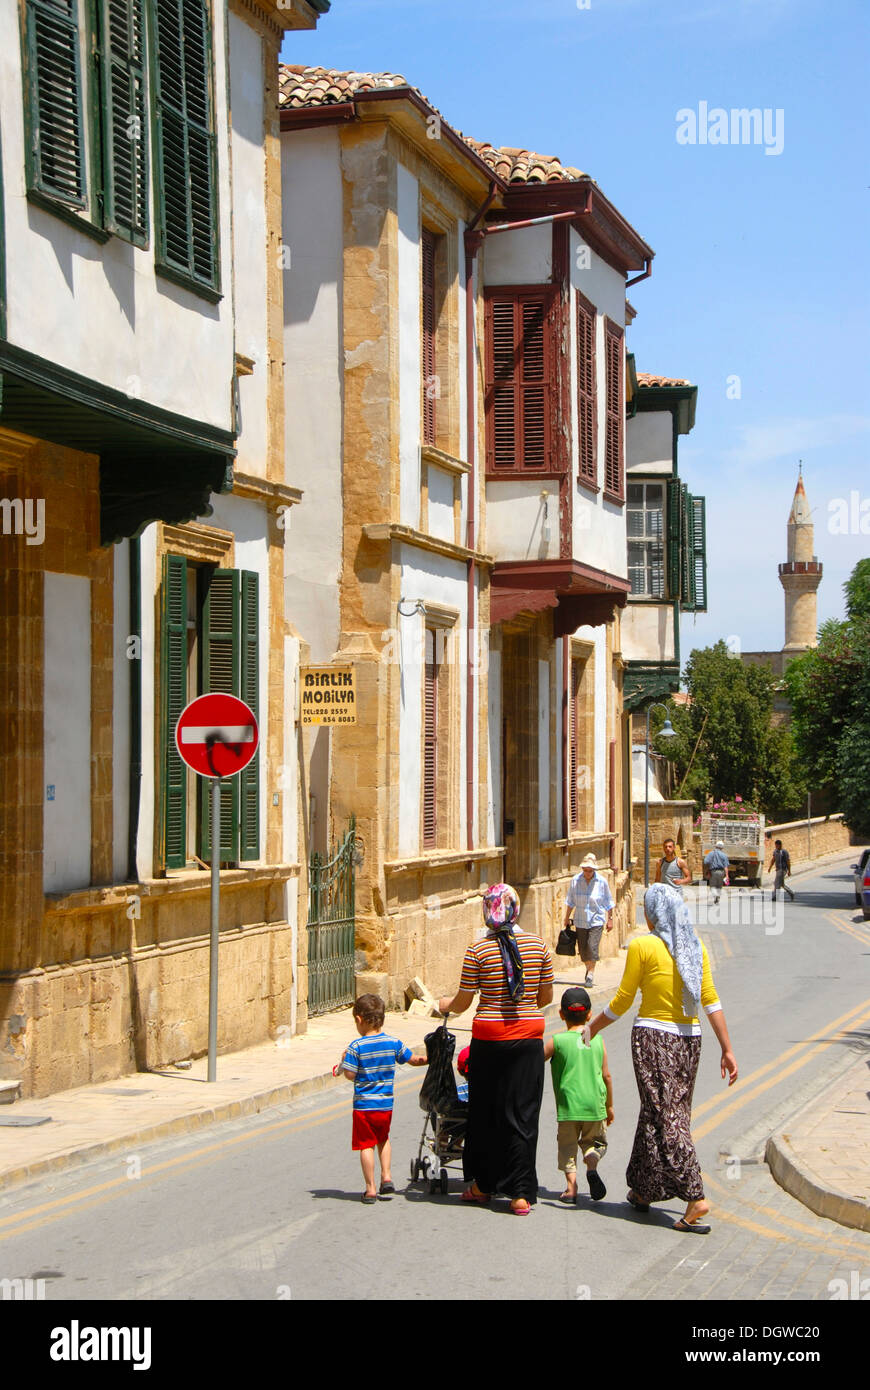 Historic Turkish architecture with bay windows, alleyway of the historic town centre with a minaret, Turkish family on the - Stock Image